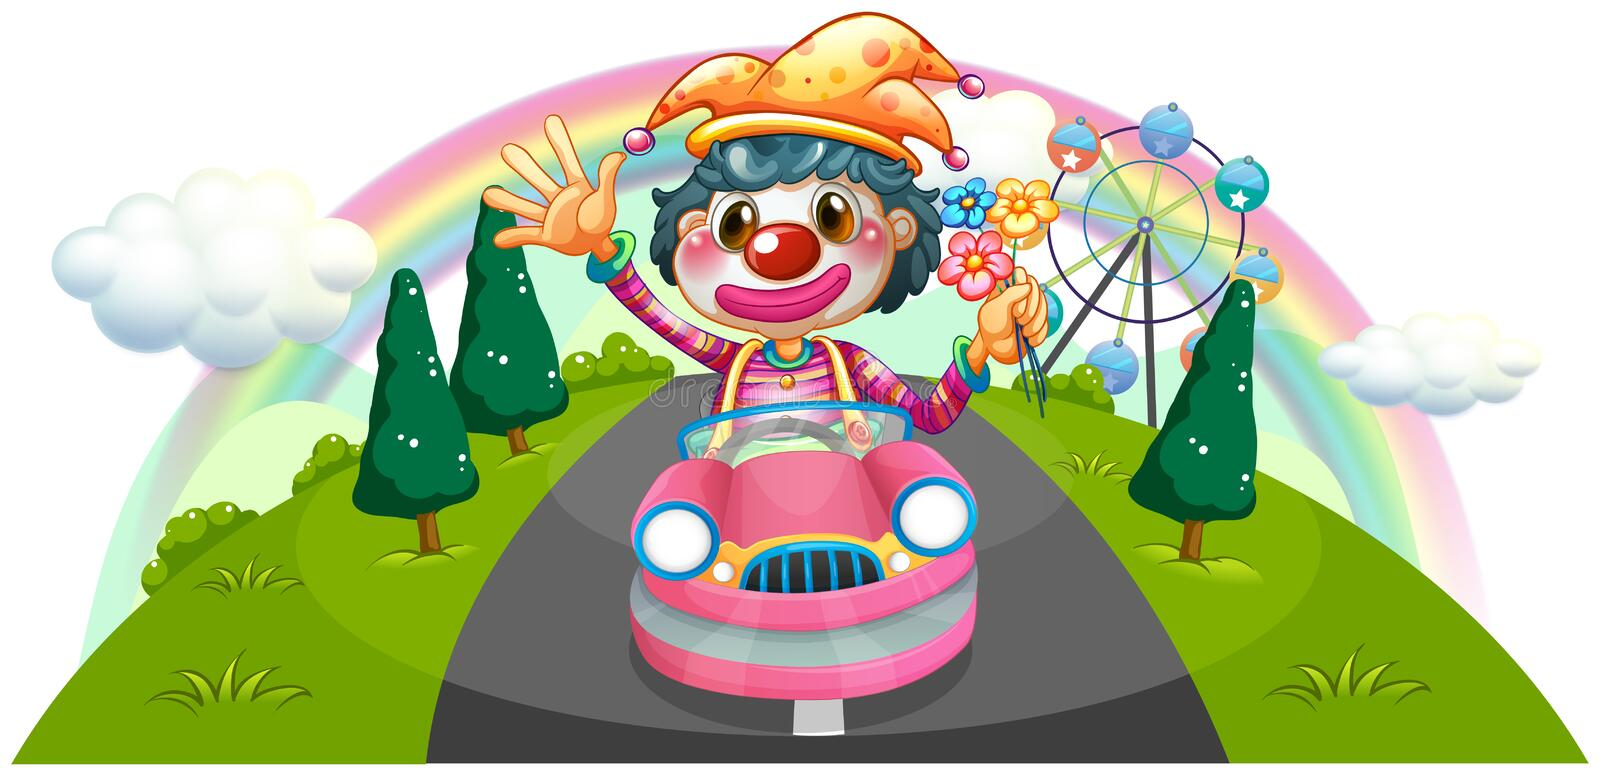 Download A Happy Female Clown Riding On A Pink Car Stock Vector - Image: 32710383